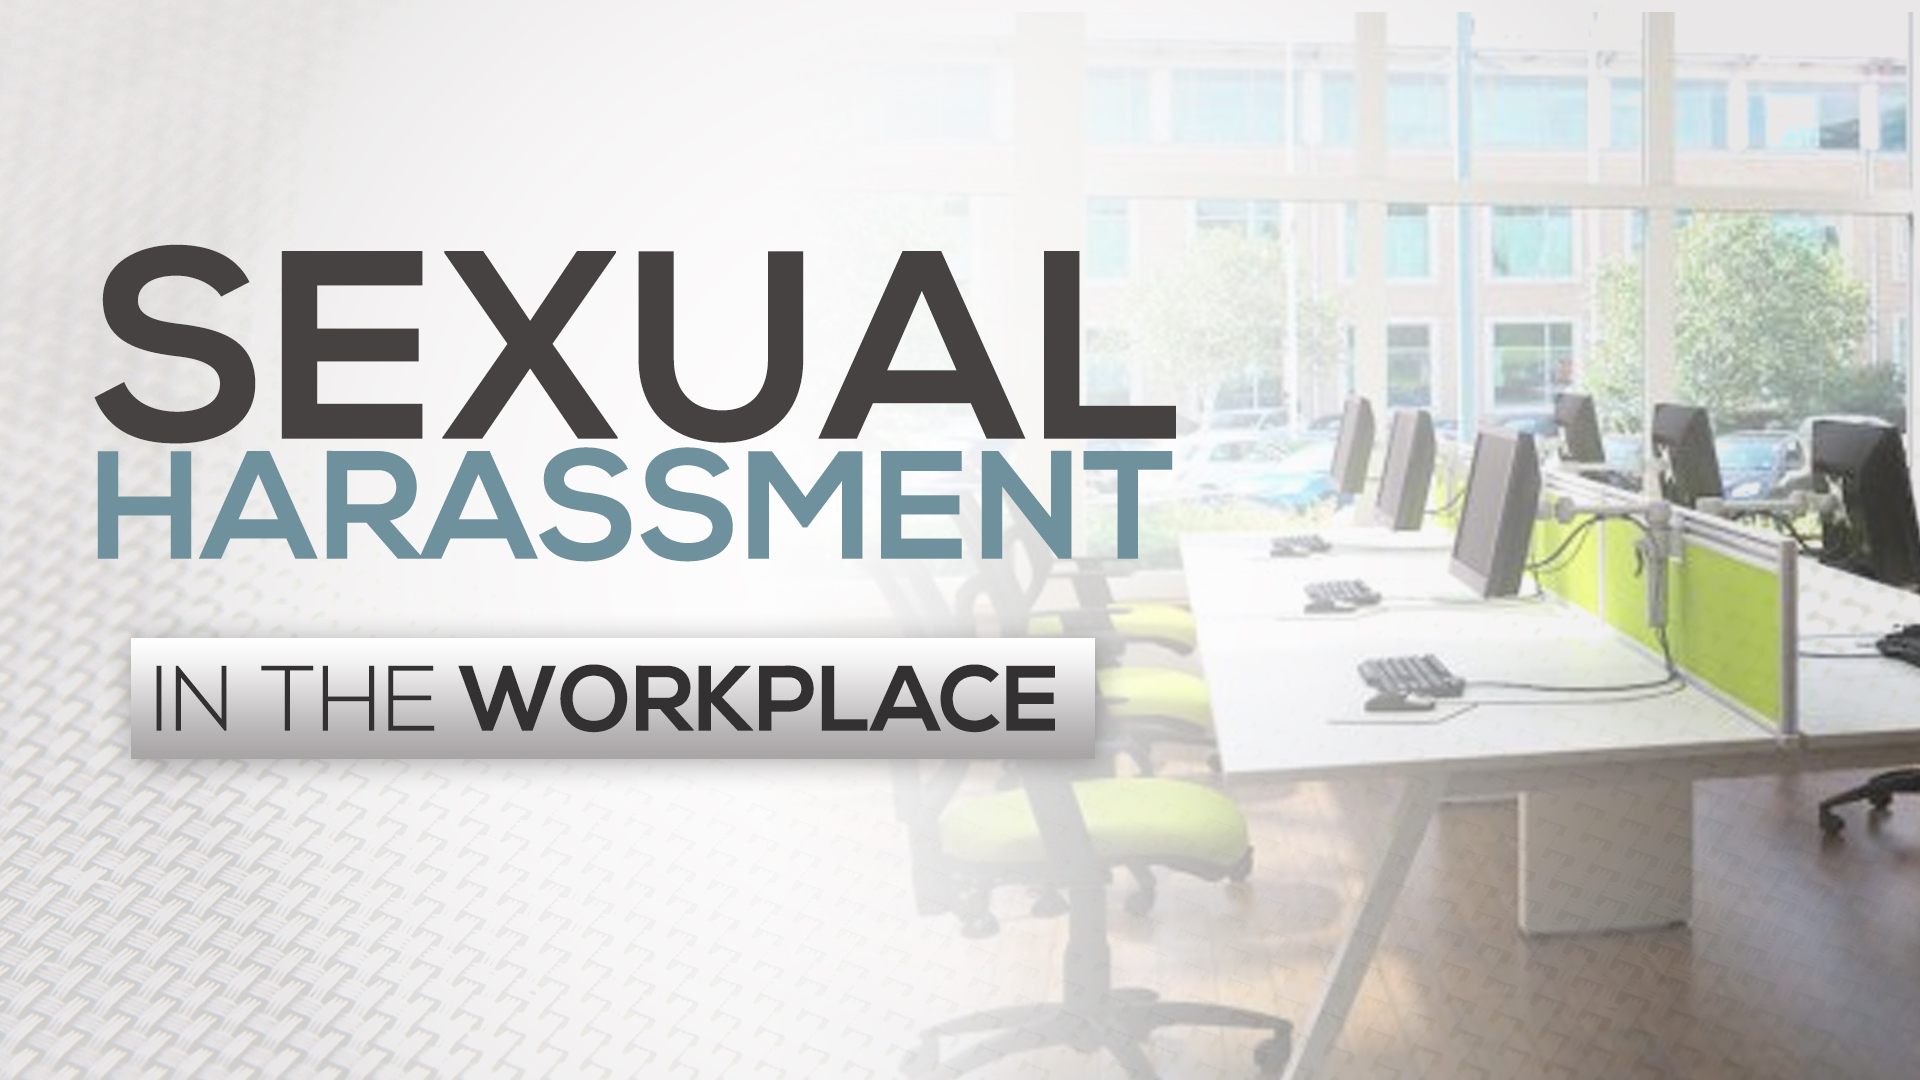 Sexual harassment in the workplace is real